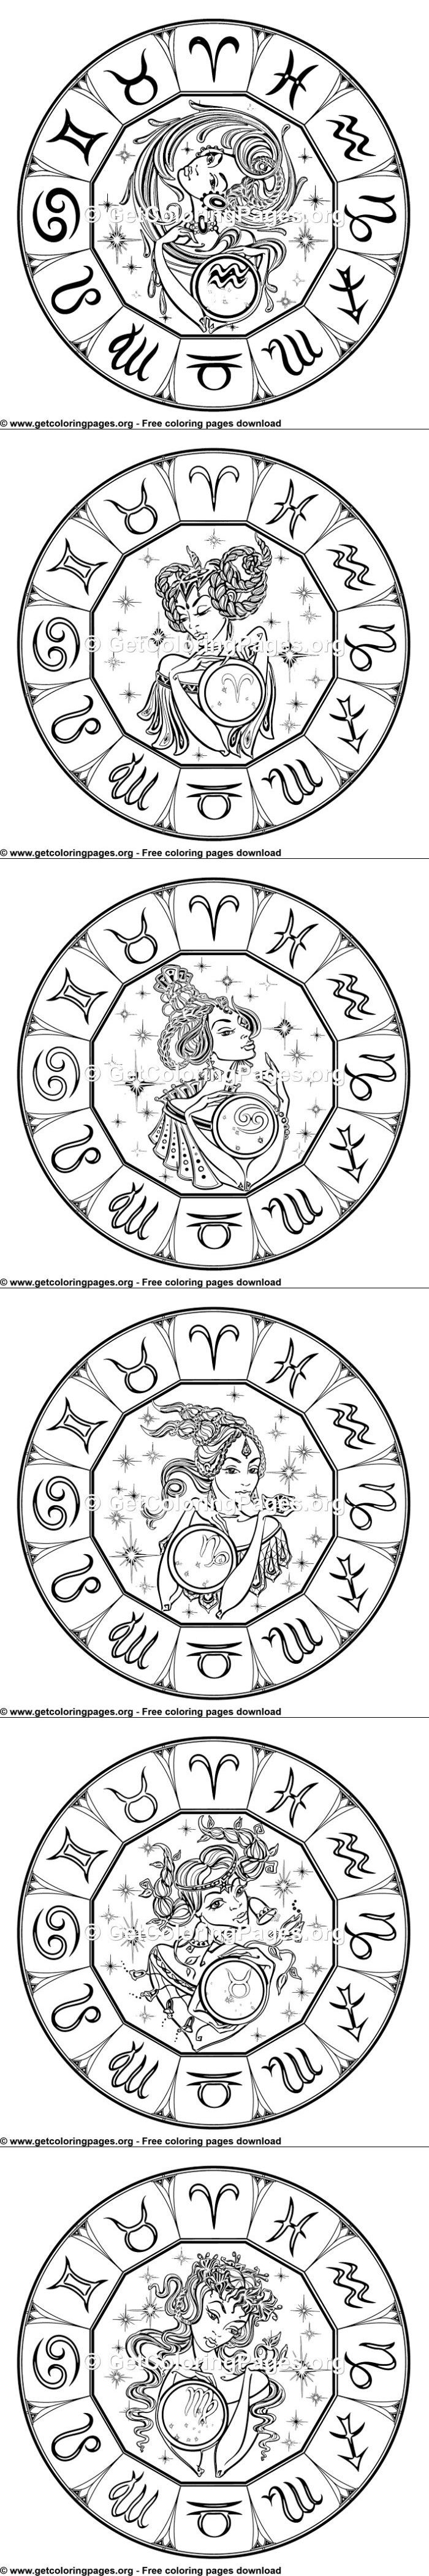 Leo zodiac sign coloring page for adults | Coloring pages ...